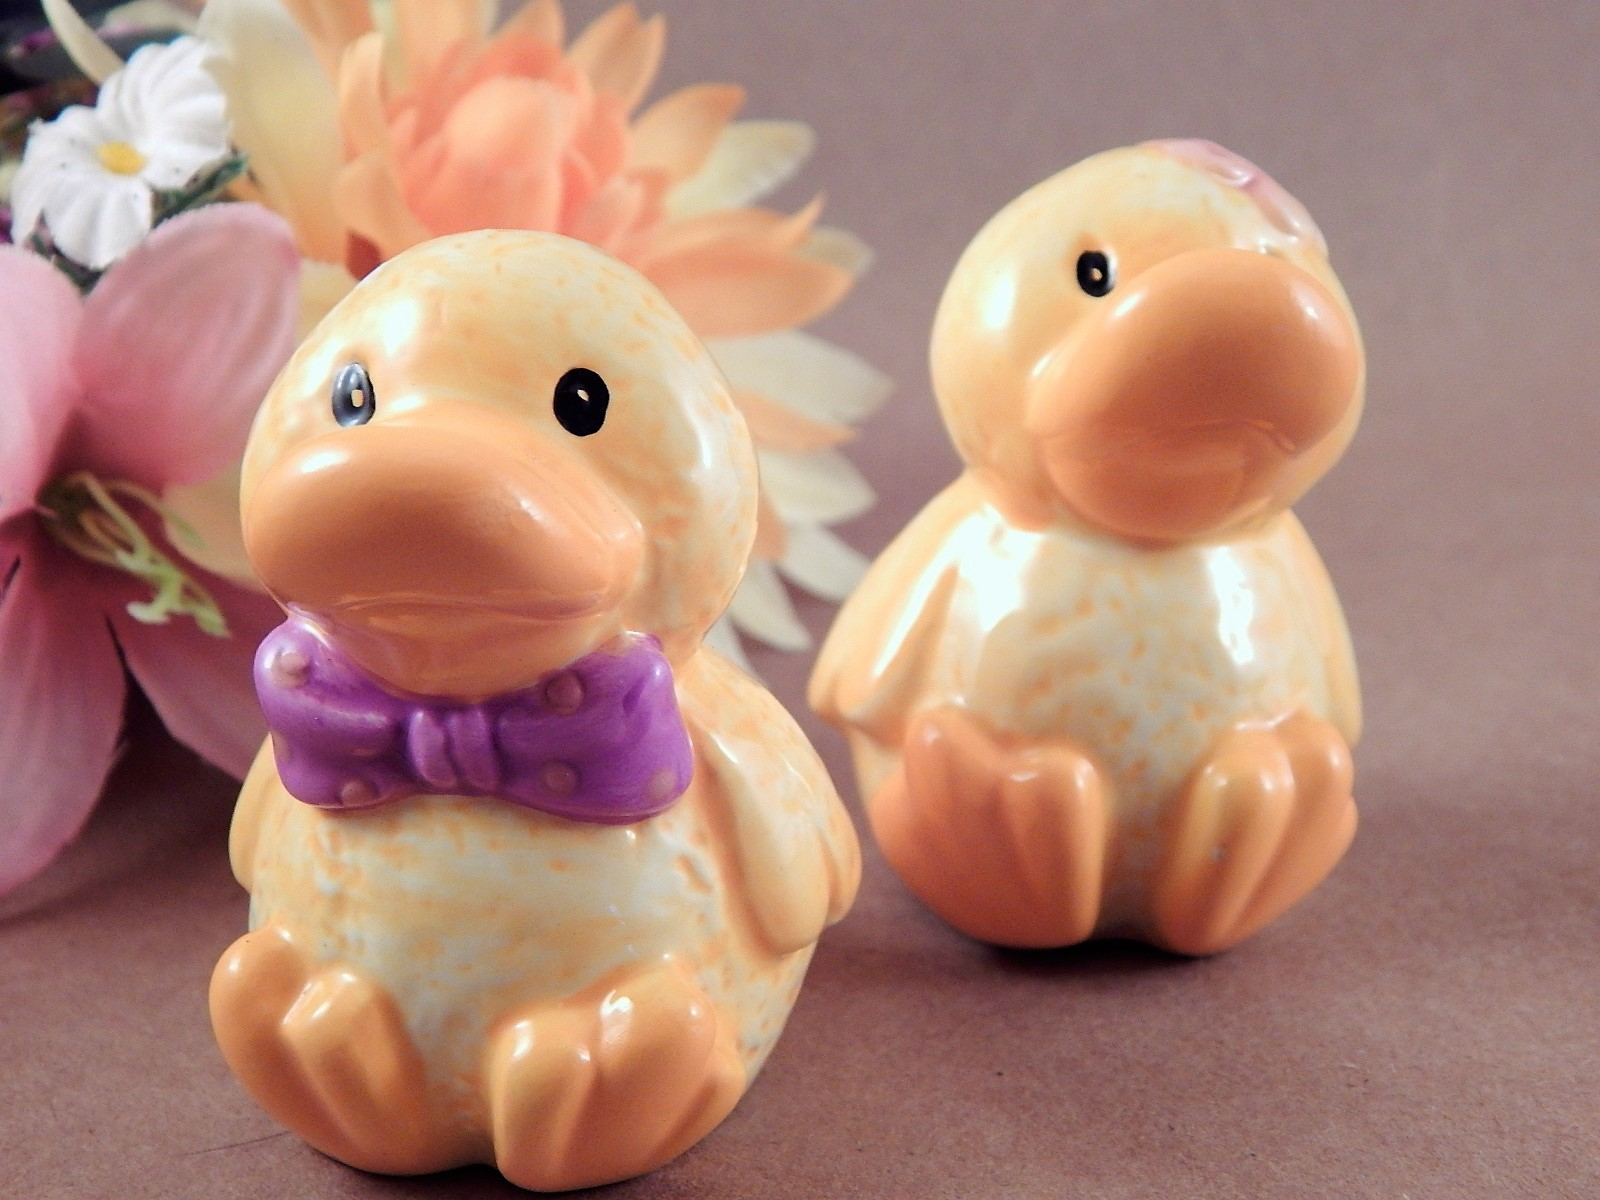 Salt and Pepper Shakers Ceramic Ducks Hand Painted Yellow Easter Tableware Collectible Novelty Spring Holiday Dish Farmhouse Kitchen Decor